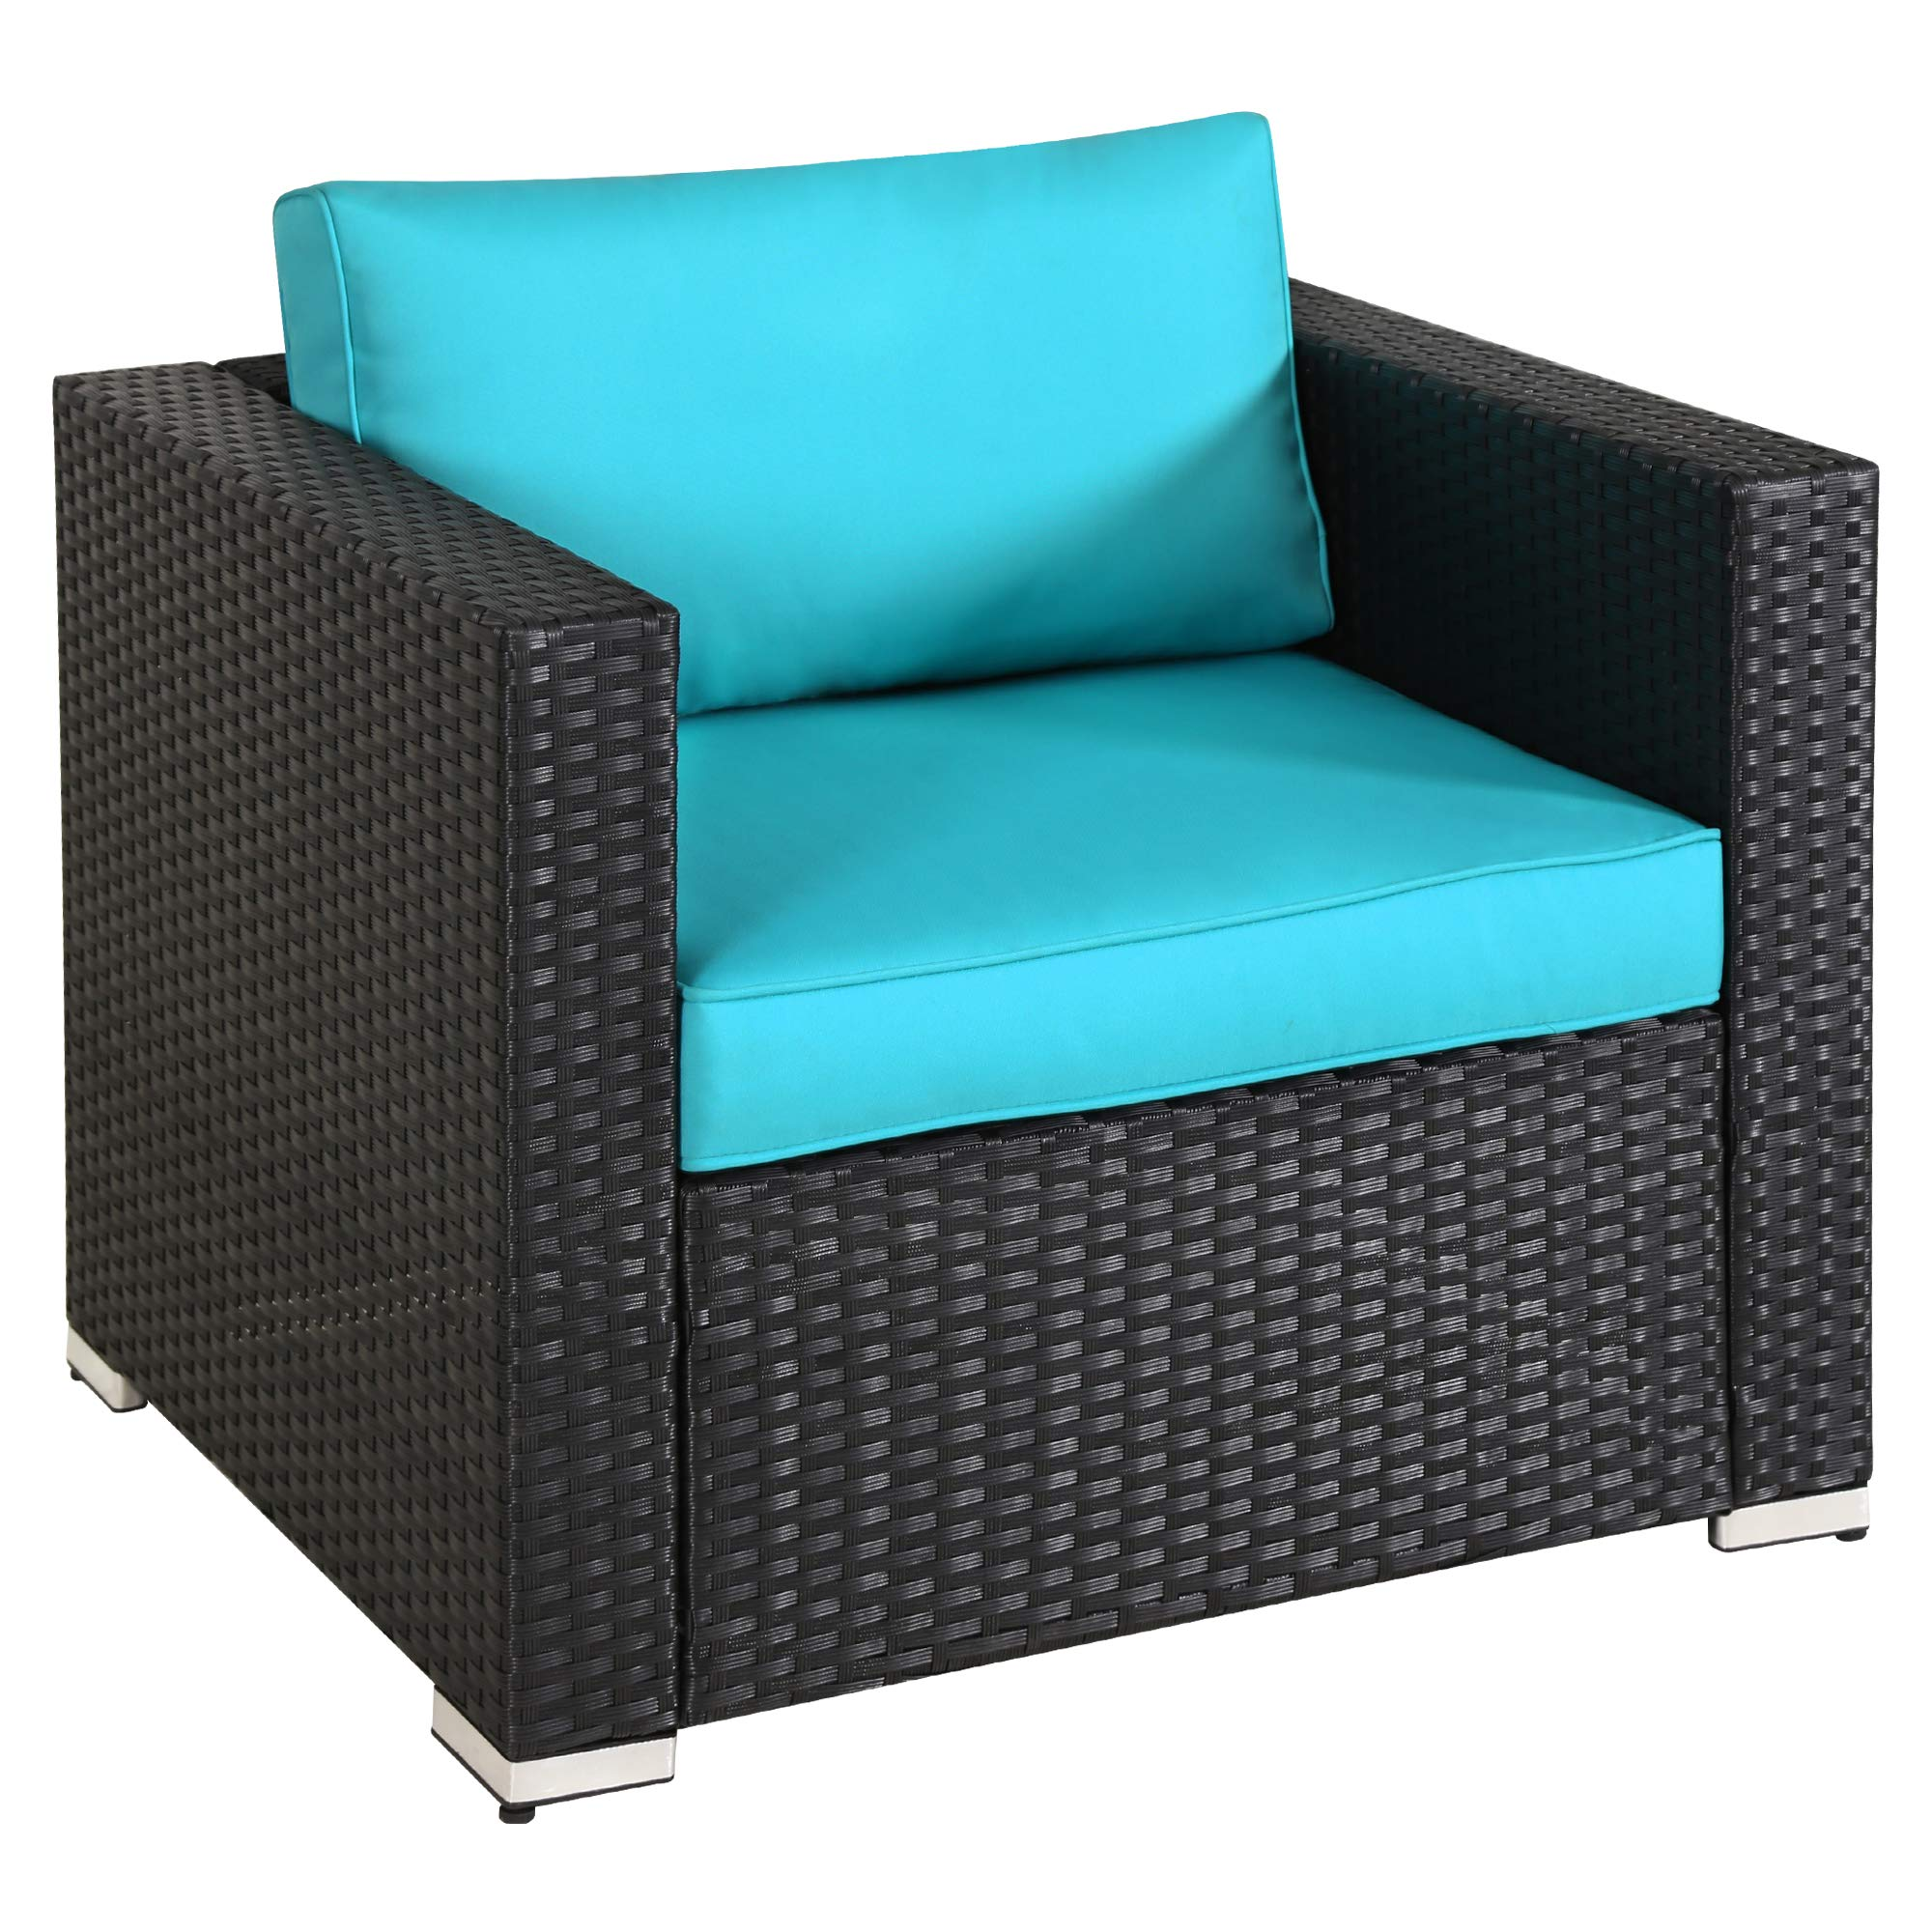 Outdoor Sectional Rattan Single Sofa with Armrest, Patio PE Wicker Furniture Additional Armchair, Garden Lawn Pool Backyard, All Weather Black Wicker Blue Washable Cushions by Green4ever